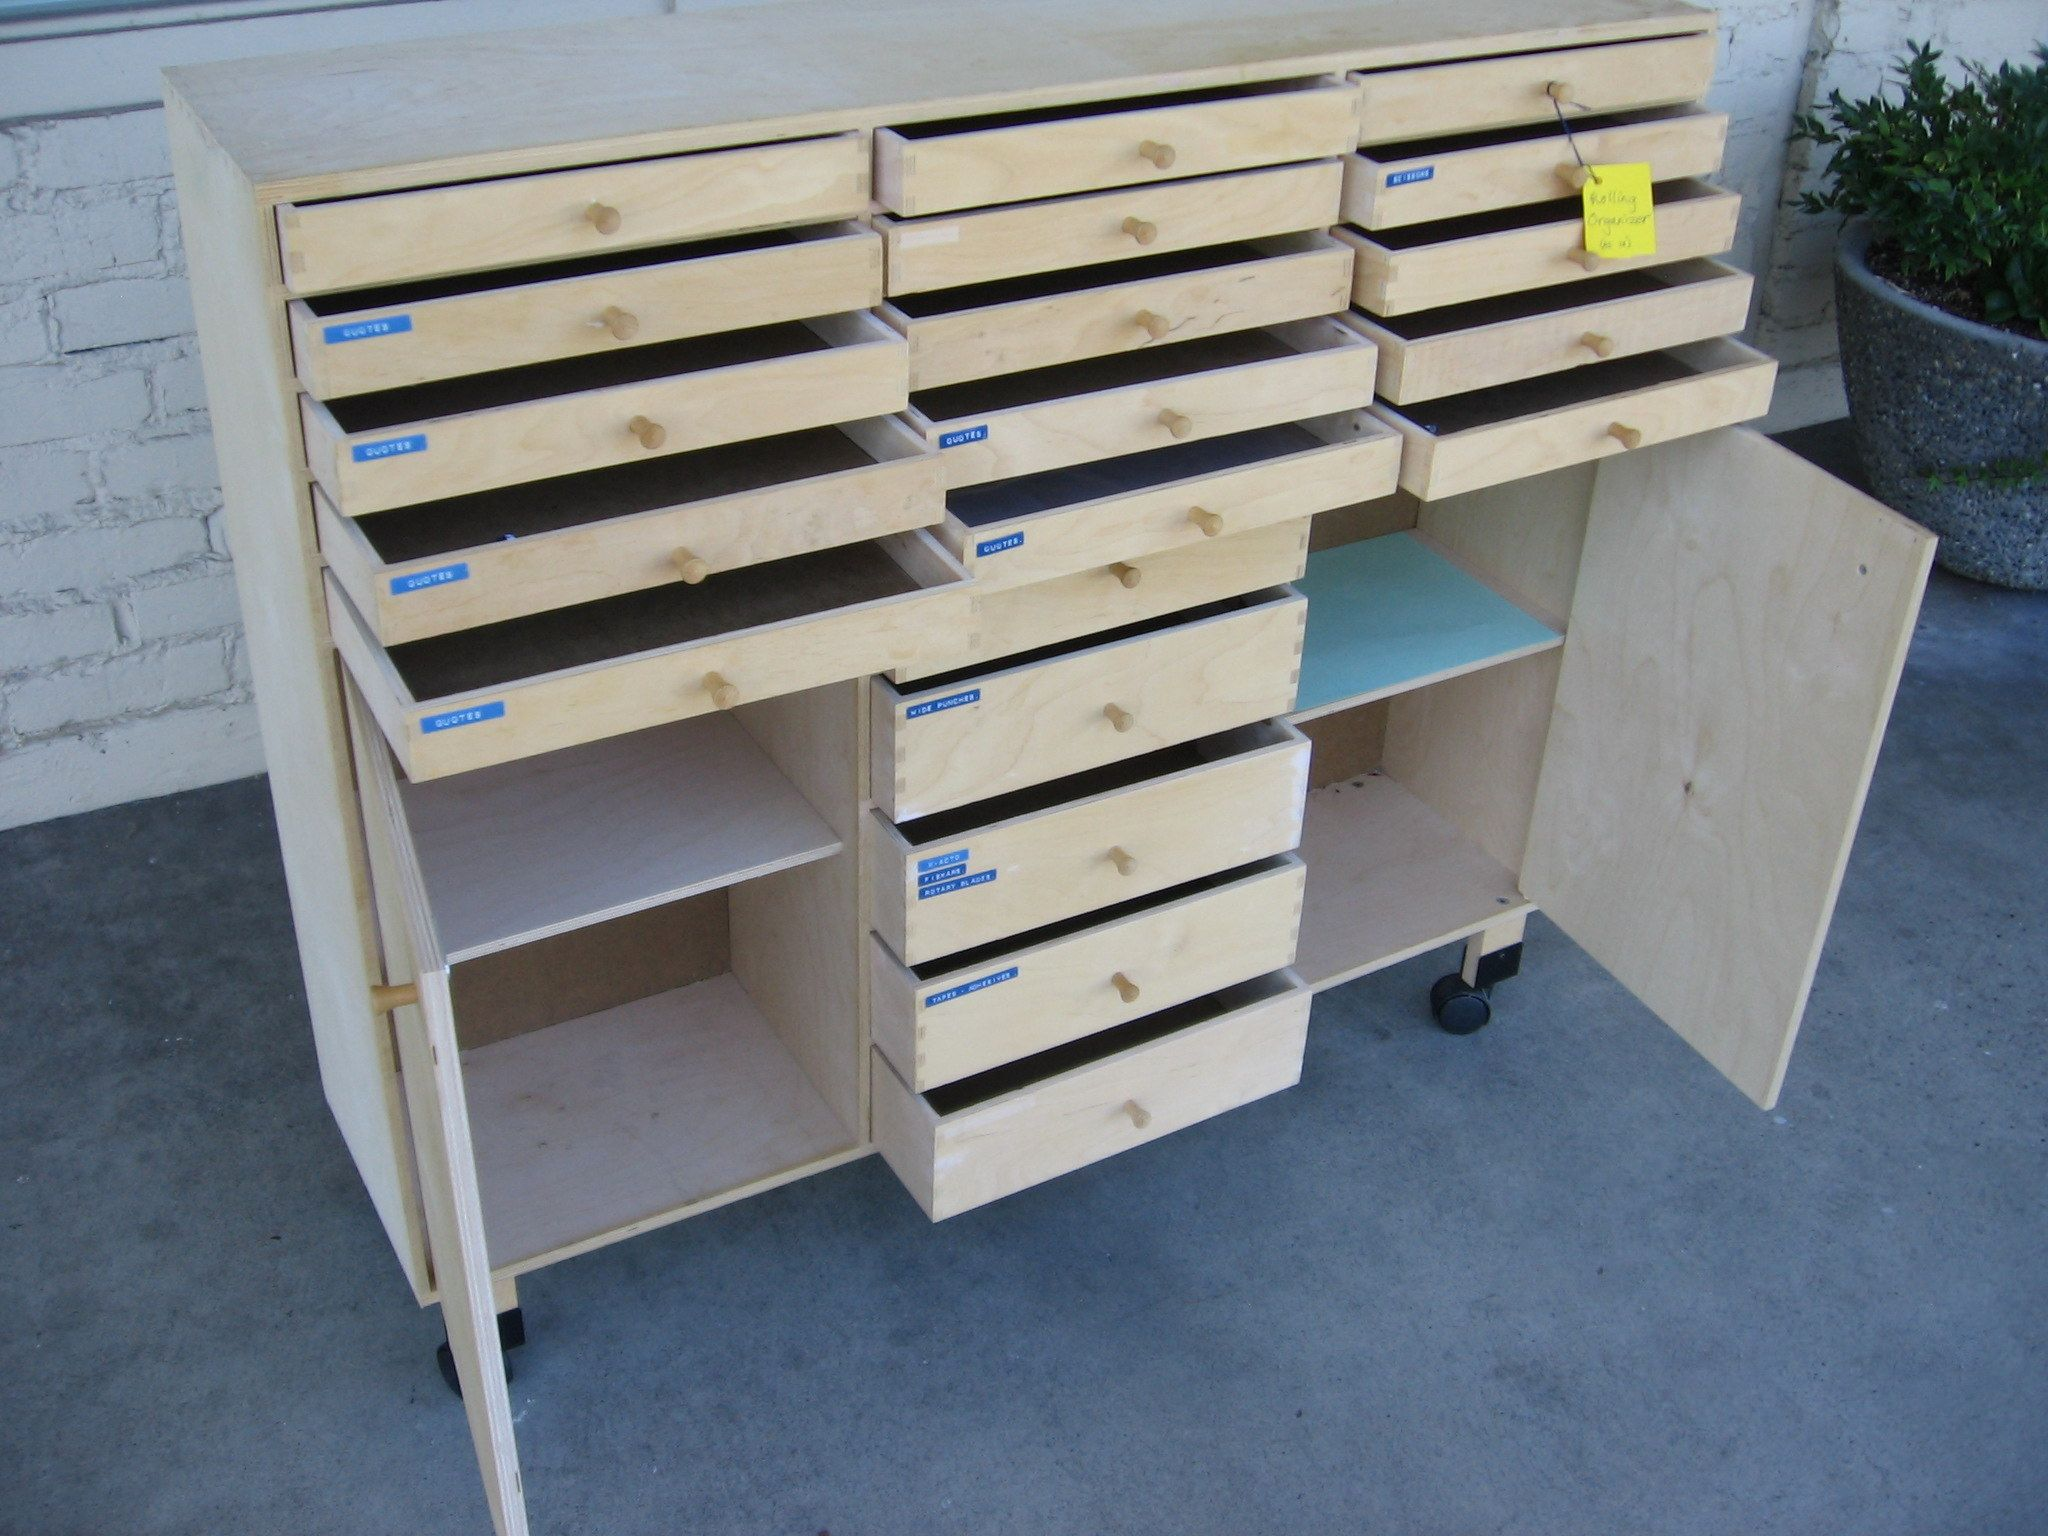 Marvelous Rolling Organizer In Birch Plywood For Artists And Crafters